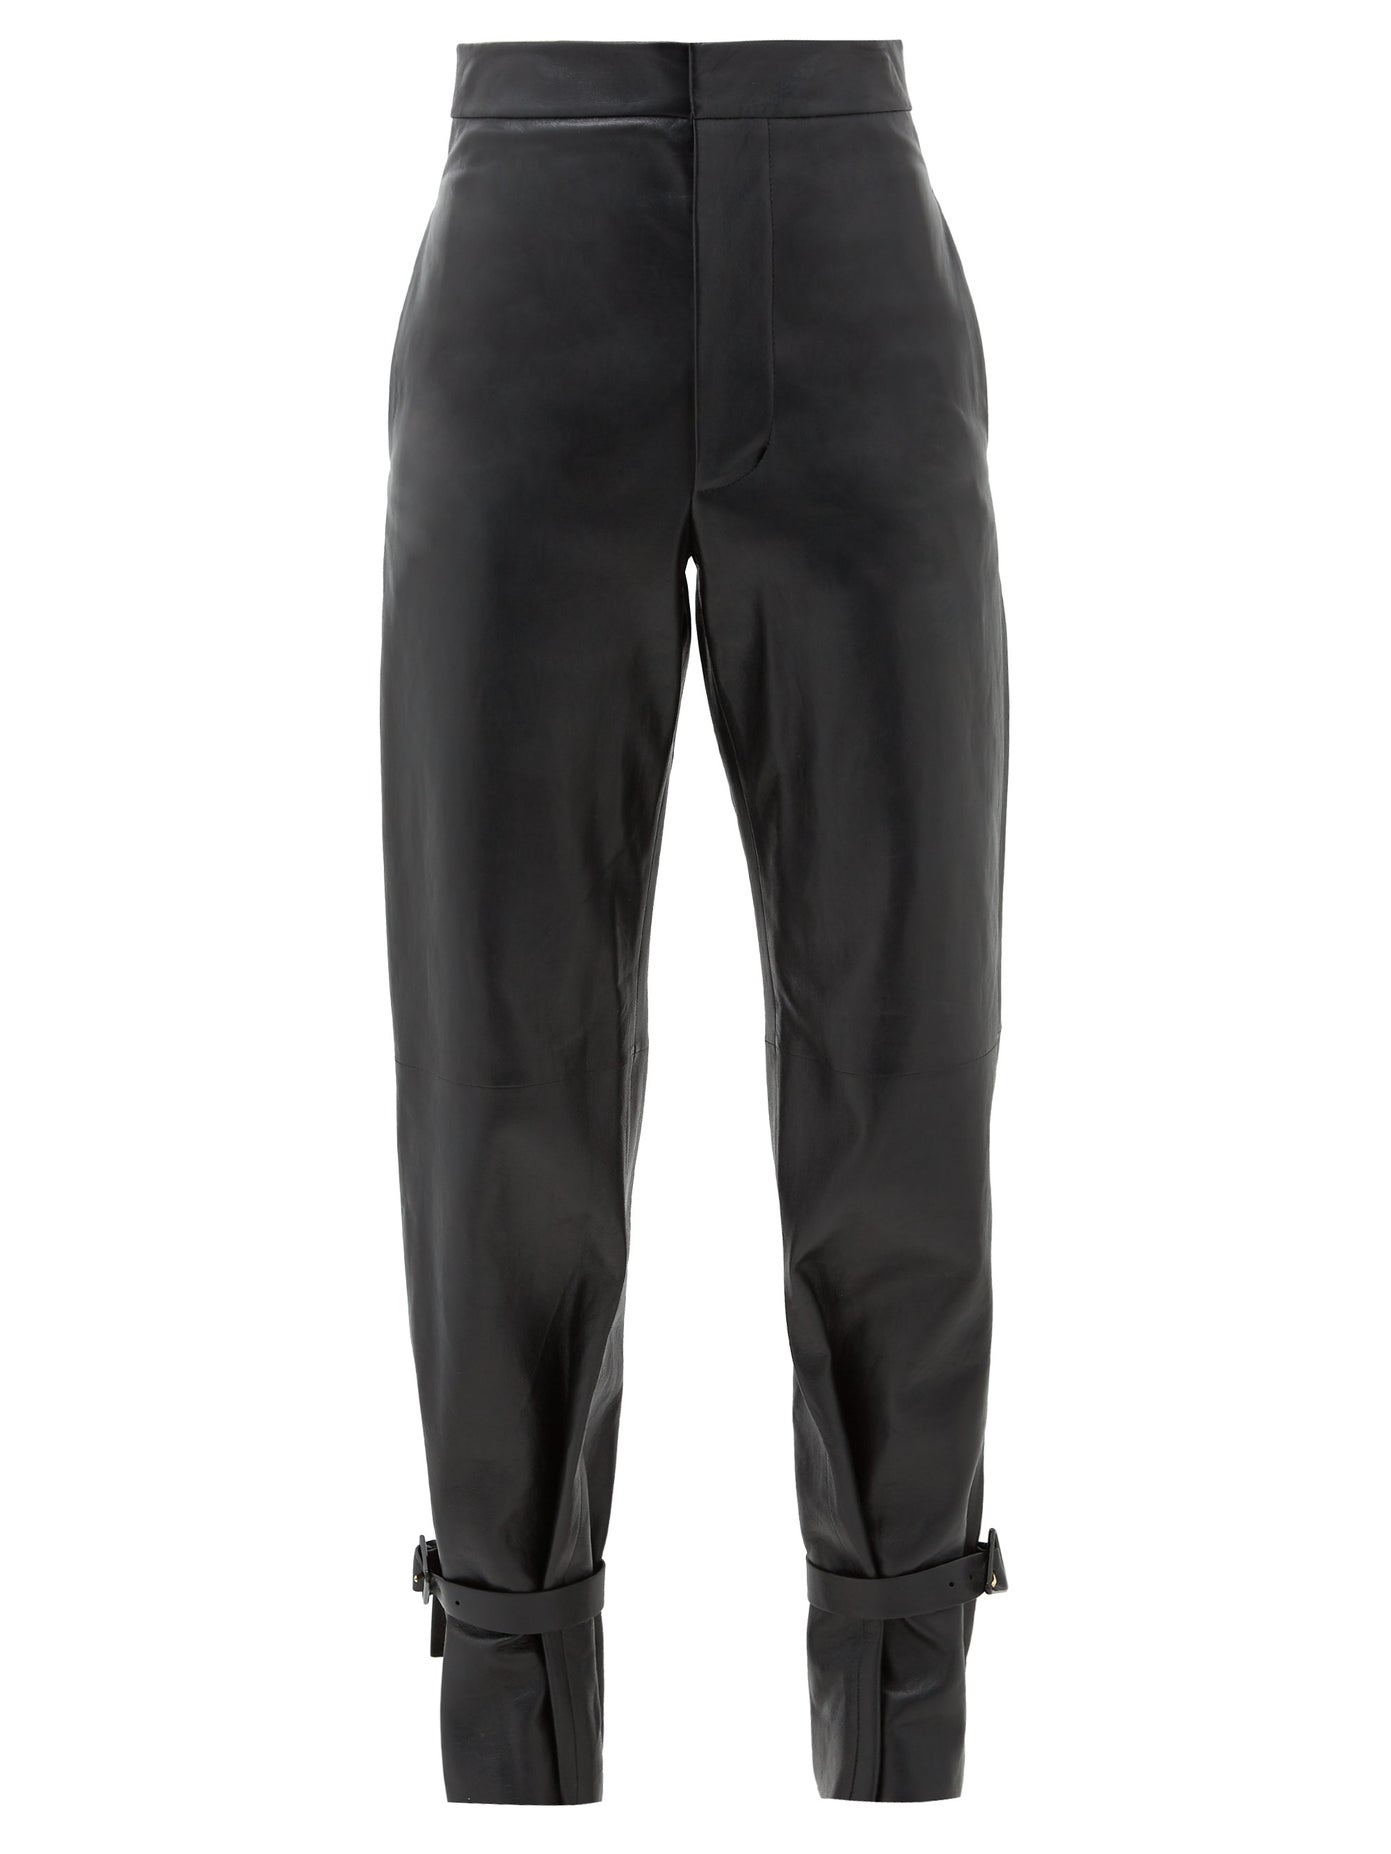 Tied-Cuff Wide Leg Pants by Bottega Veneta, available on matchesfashion.com for $2694 Kylie Jenner Pants Exact Product